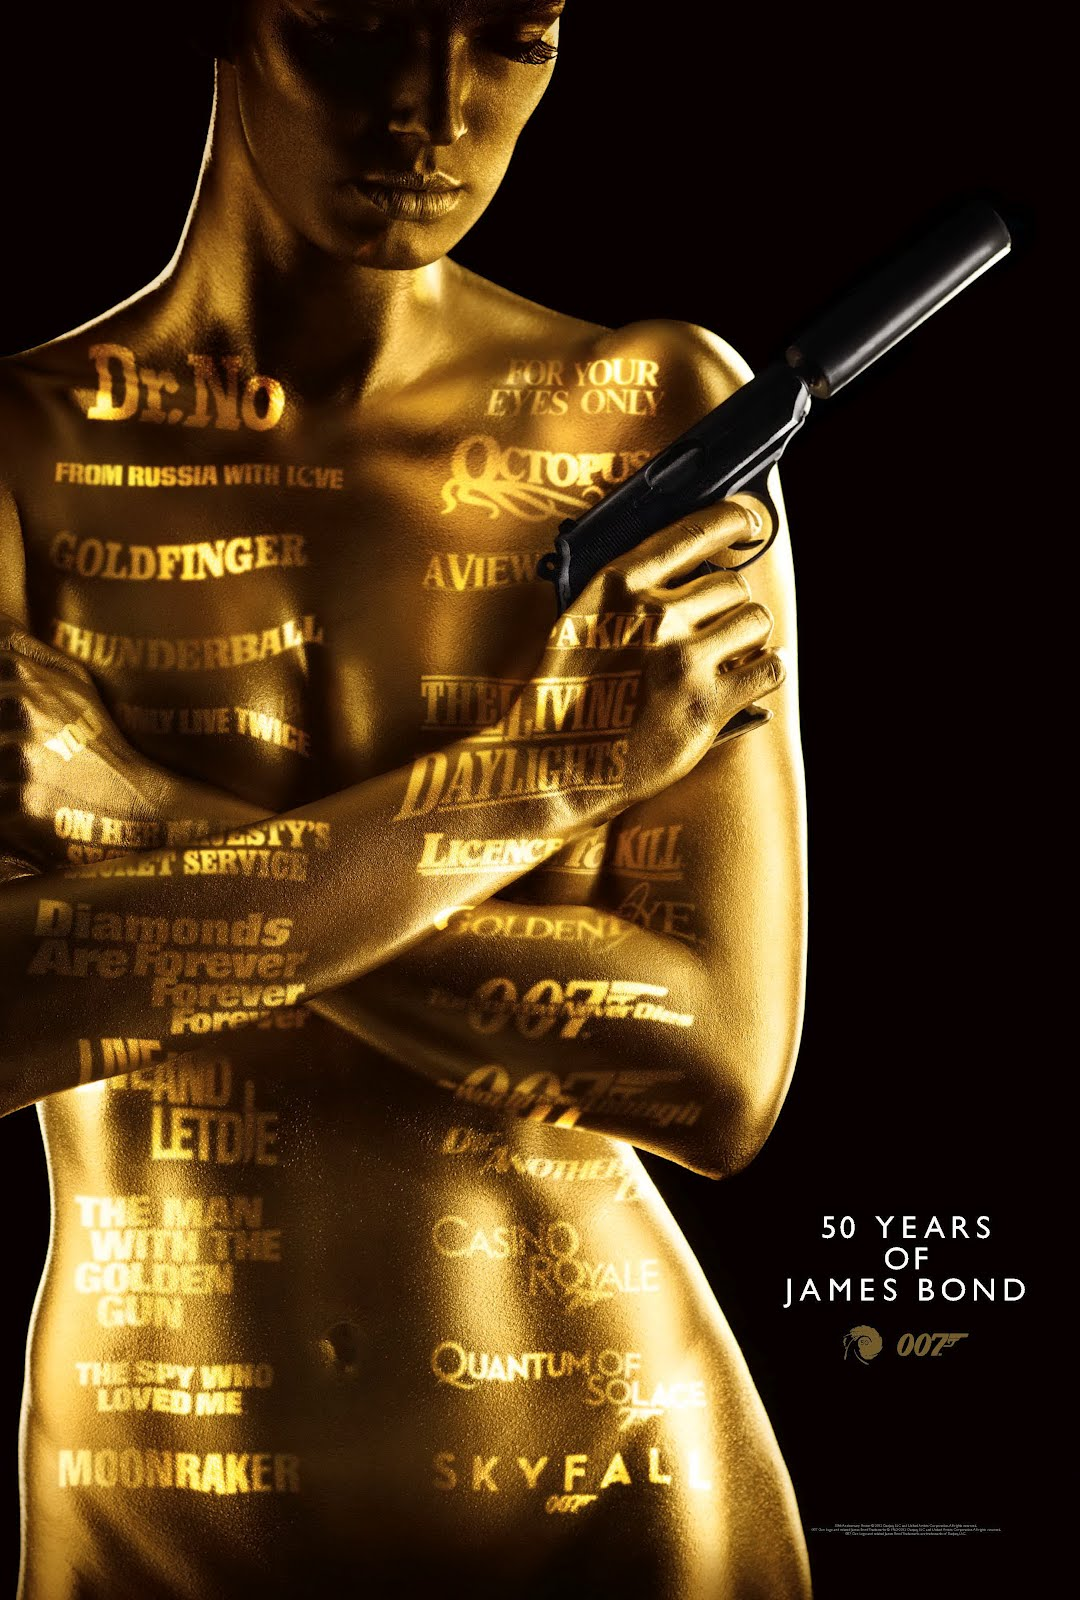 http://4.bp.blogspot.com/-cHmrYp6_fyo/T5IzUIGt7eI/AAAAAAAAIS0/R-hSD_3i2ho/s1600/James_Bond_50th_Anniversary_OS_poster_golden_a_50_years_of_007.jpg